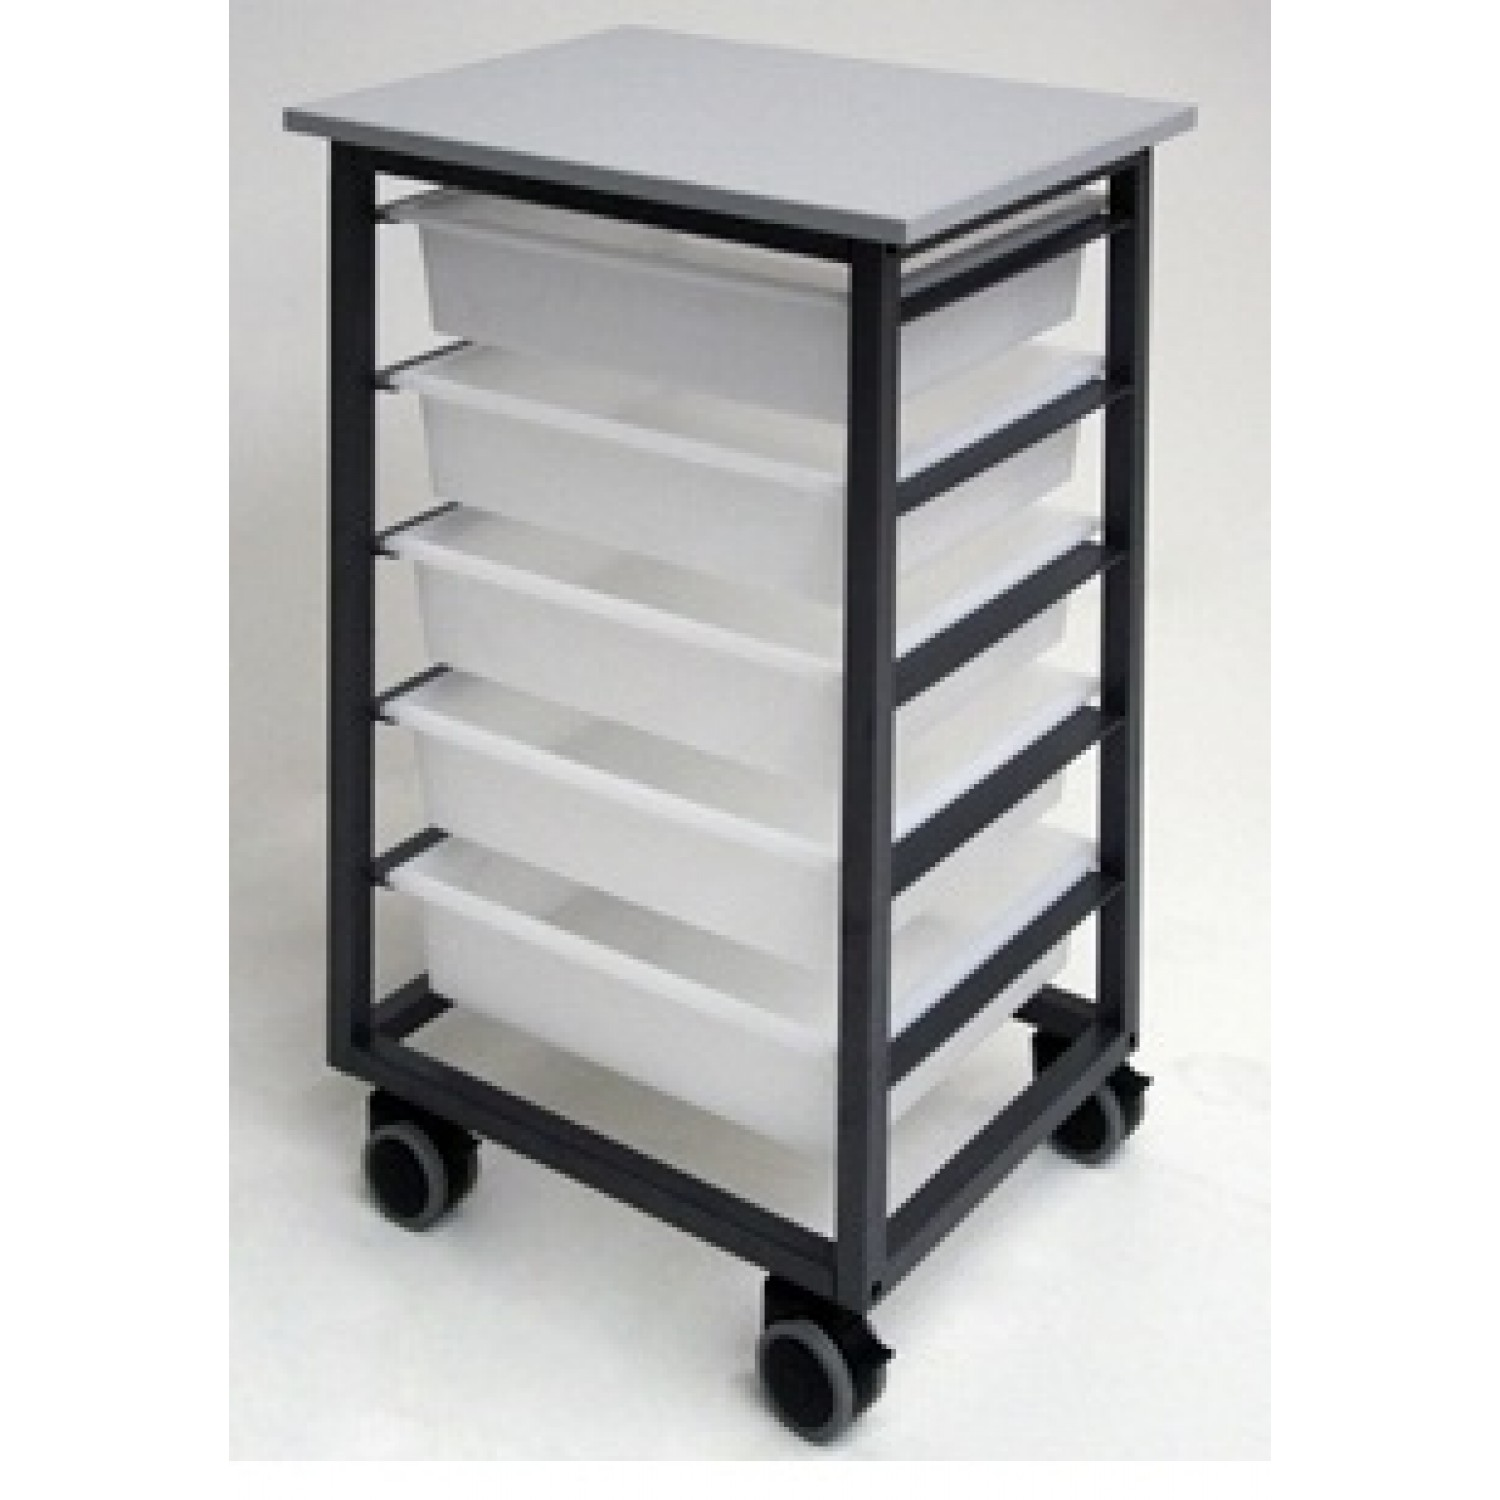 5 or 10 draw trolley office furniture since 1990 for Mobile furniture